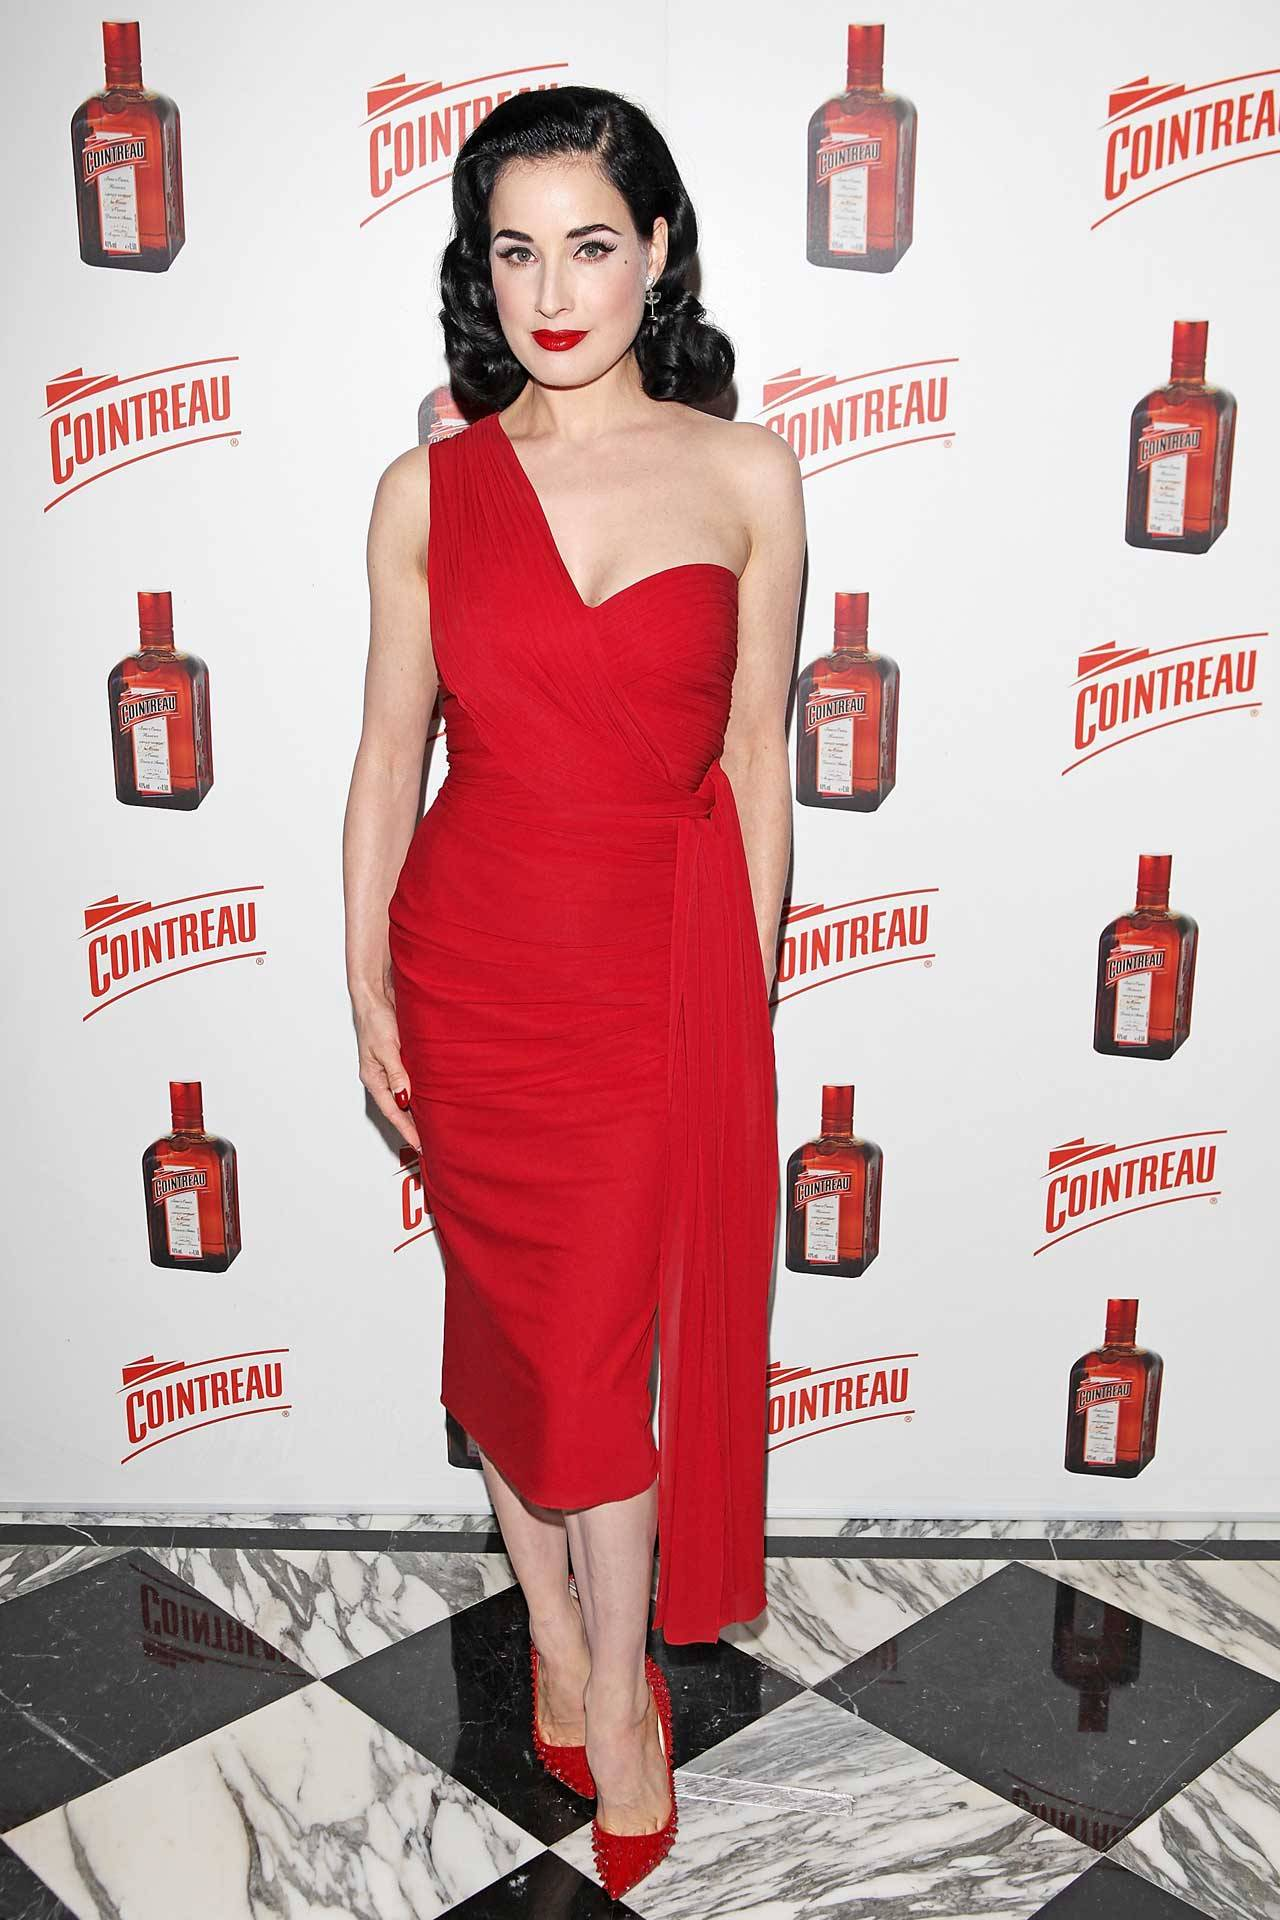 Dita Von Teese at The Dover Street Arts Club in London, September 9th